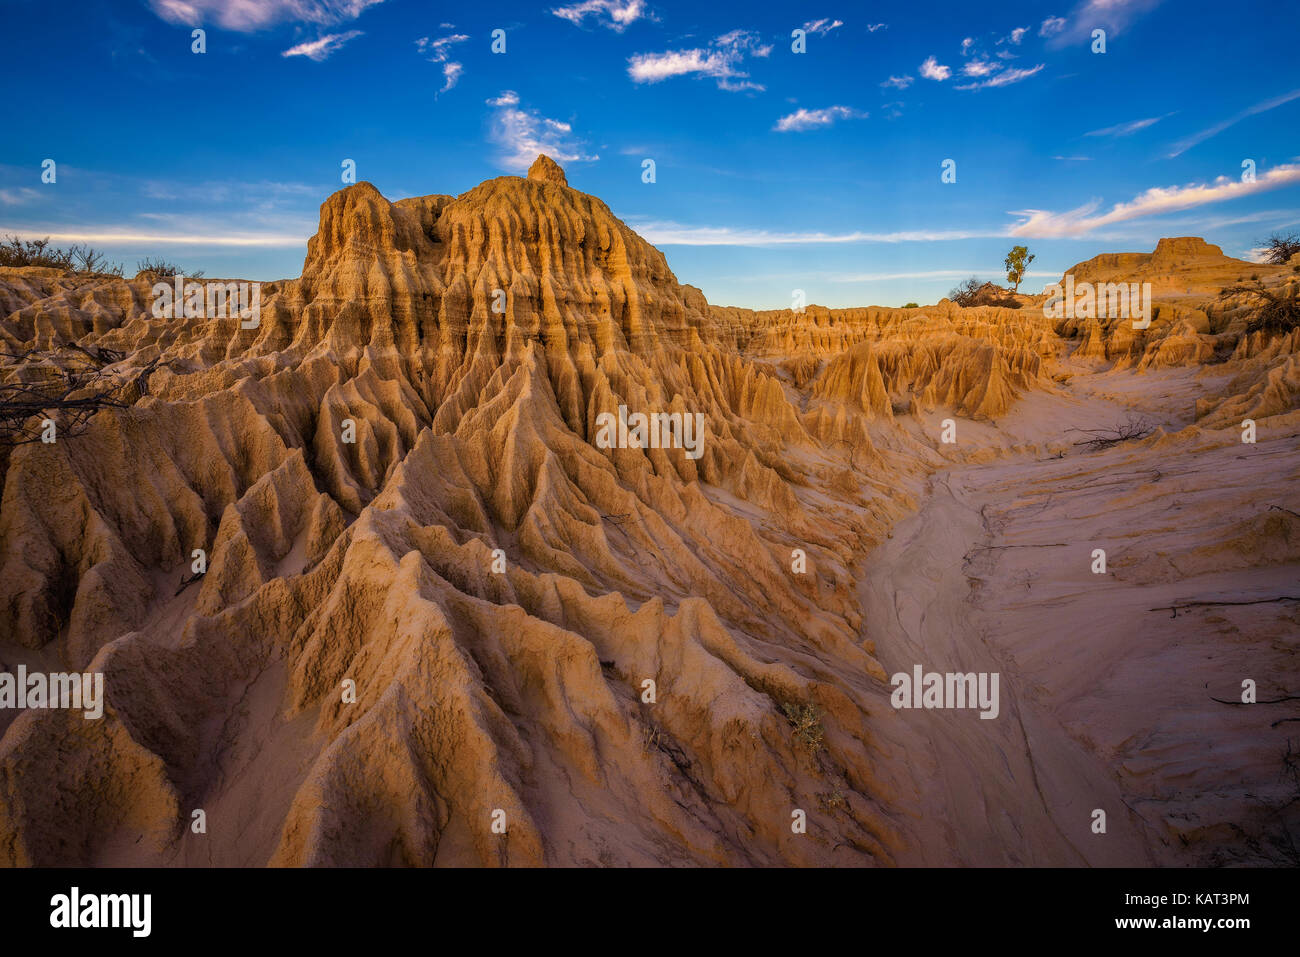 Formations in outback desert of New South Wales in Australia - Stock Image